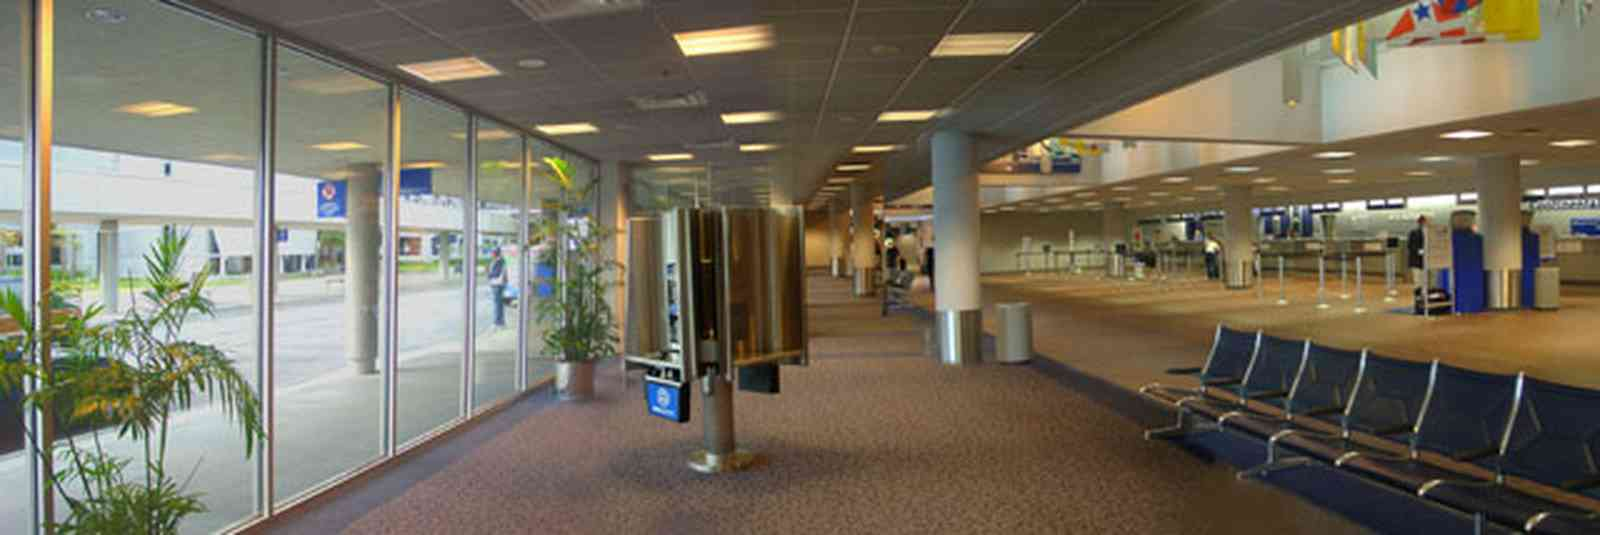 Pensacola:-Regional-Airport_03.jpg:  terminal building, airport, jet plane, ticketing counter